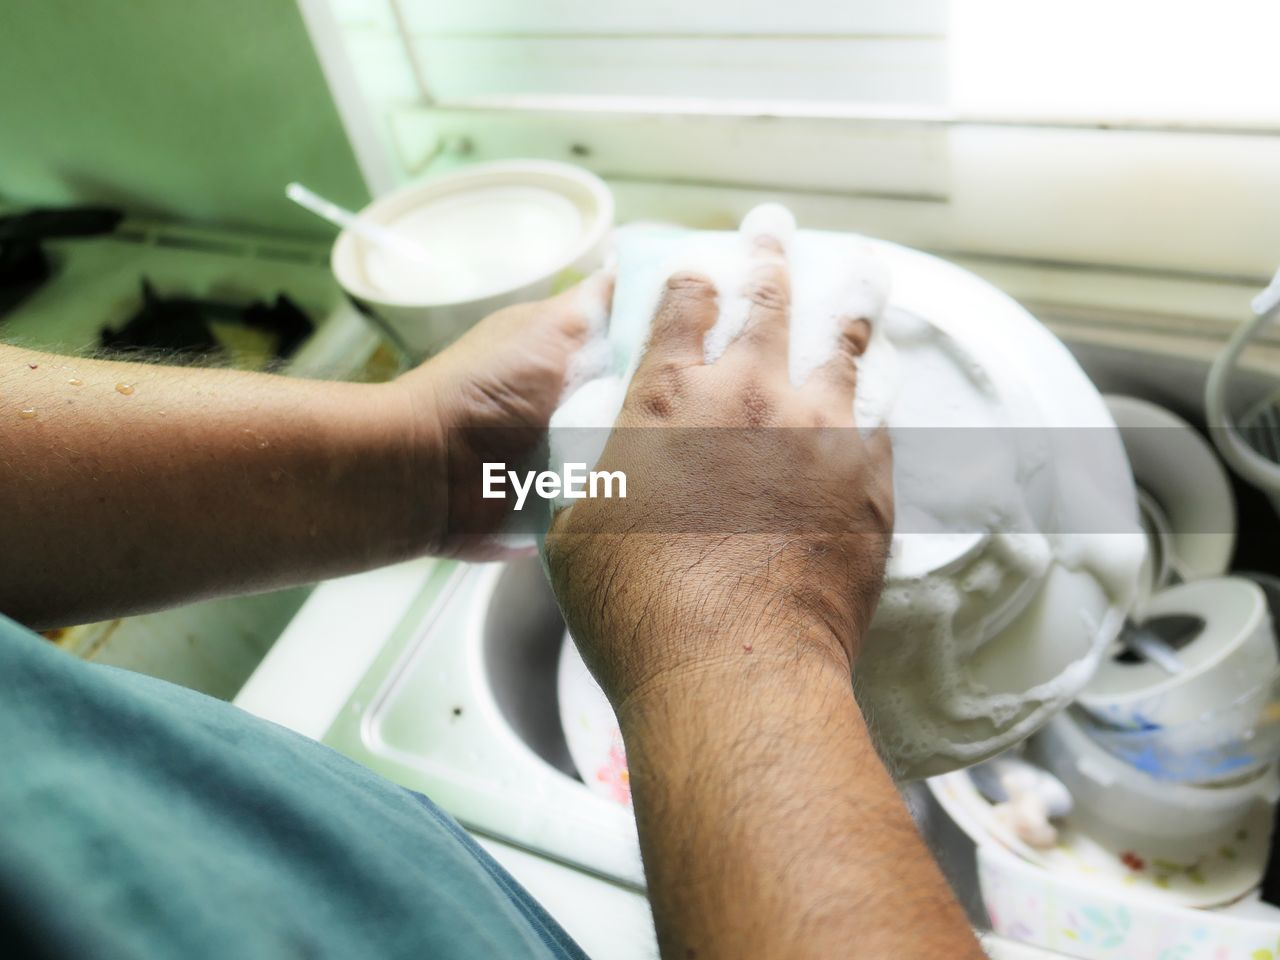 Over the shoulder view of man washing utensils in sink at home